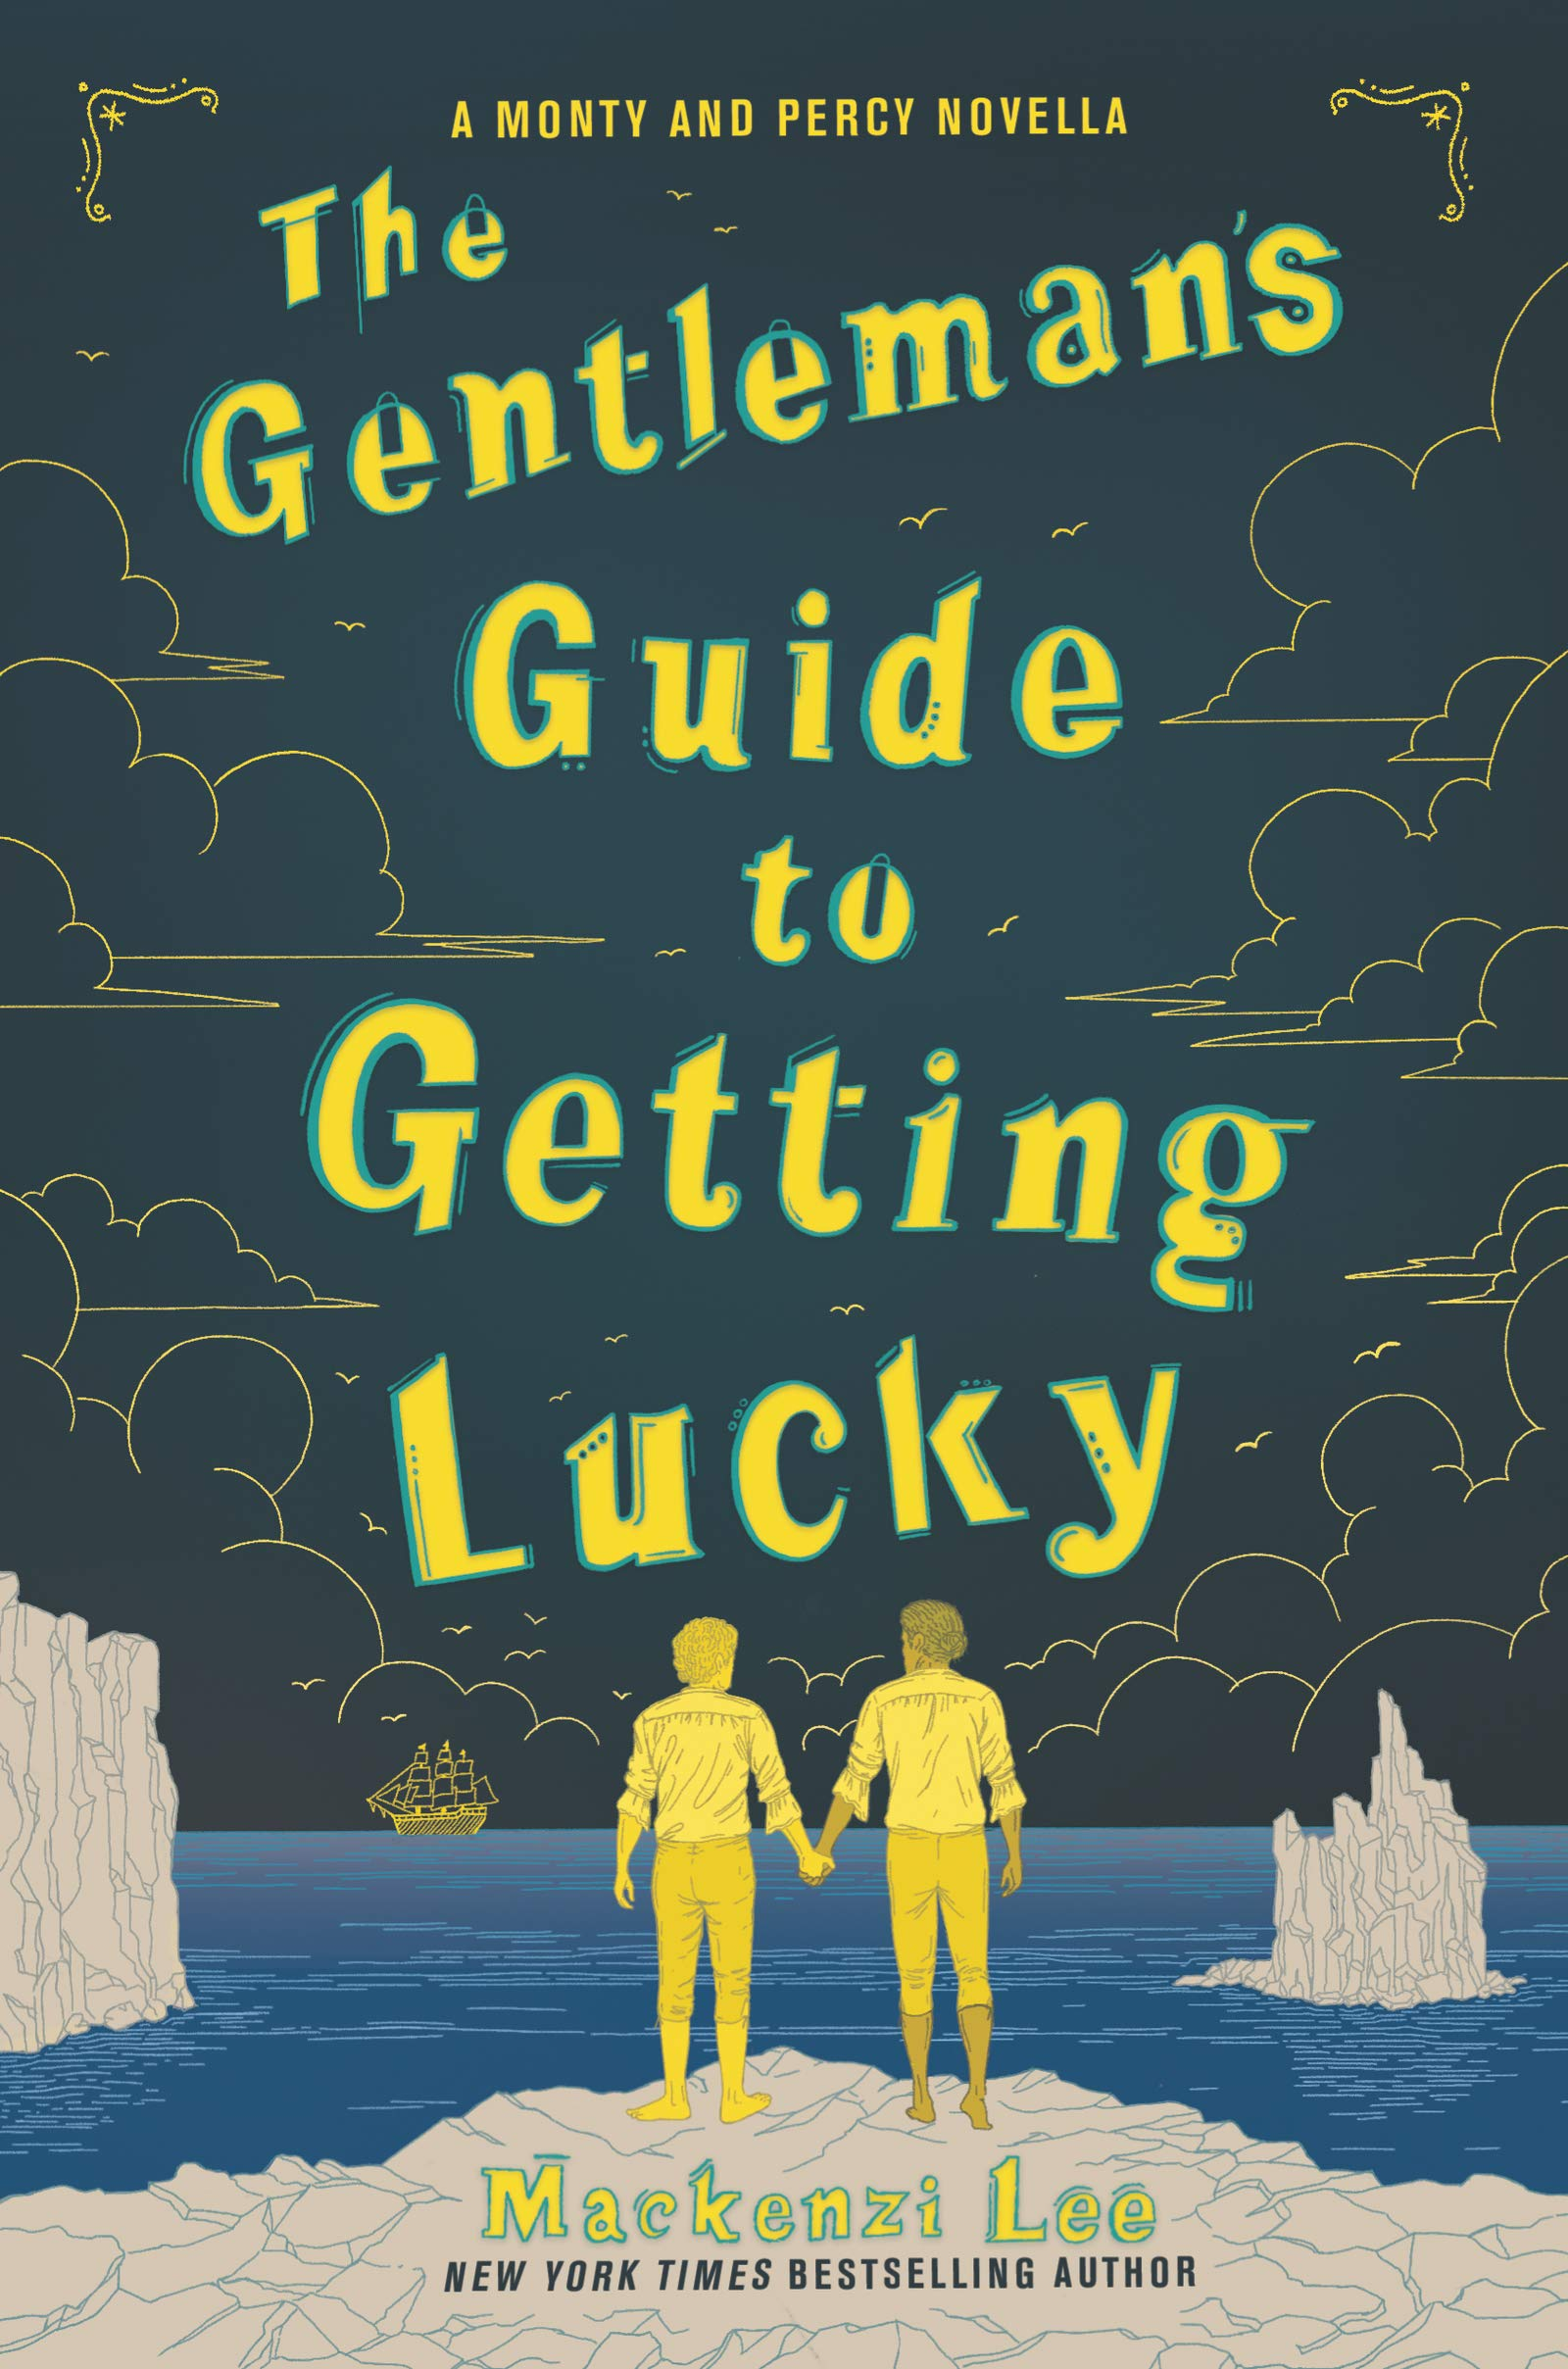 Amazon.com: The Gentleman's Guide to Getting Lucky (Montague ...